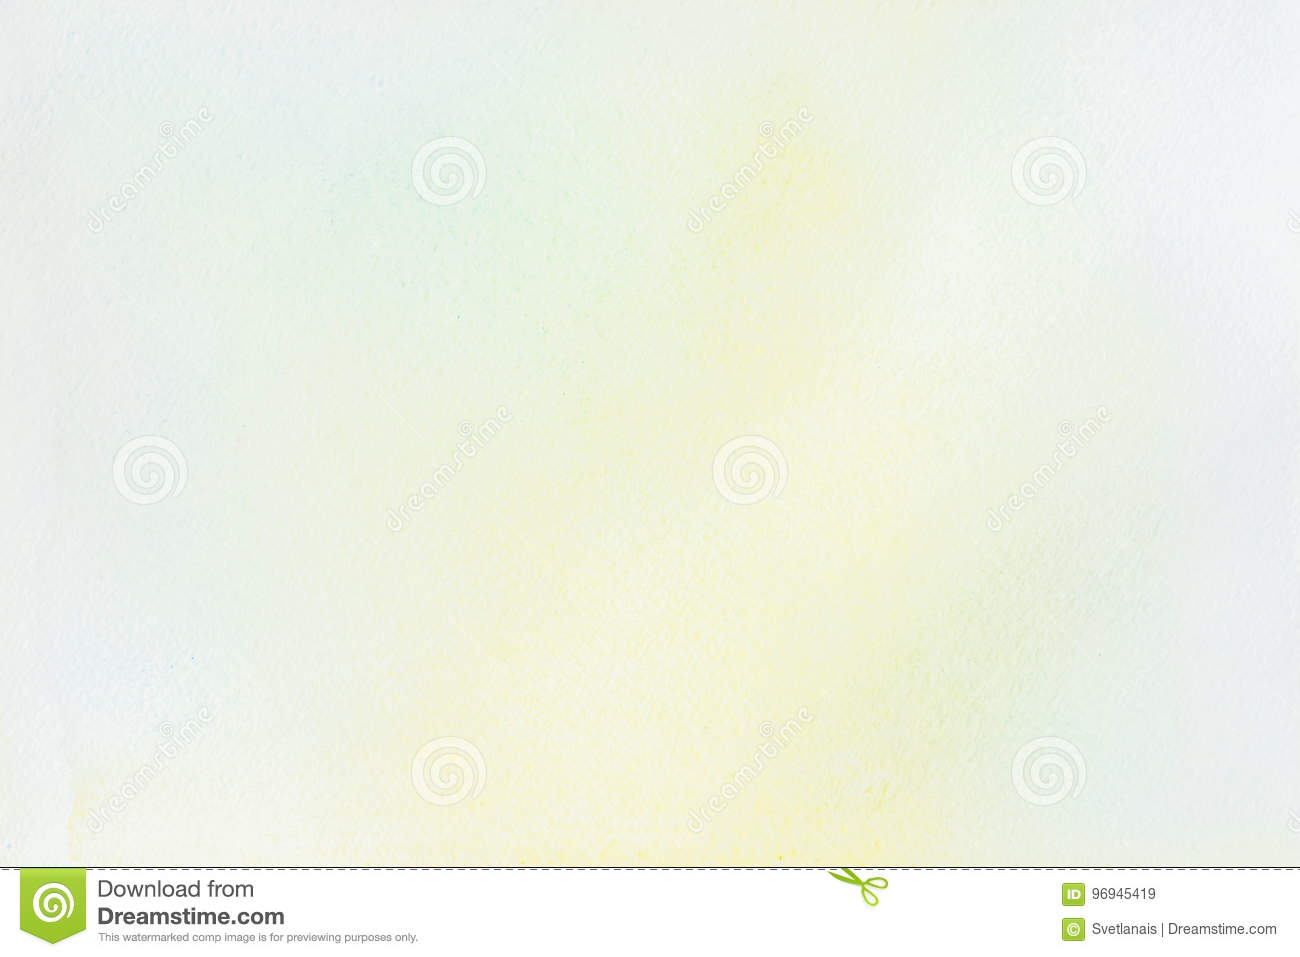 Download Very Soft Hand-drawn Watercolor Stain On White Of Water-color Paper. Abstract Image For Layout, Template, Banner Design Stock Image - Image of artistic, design: 96945419